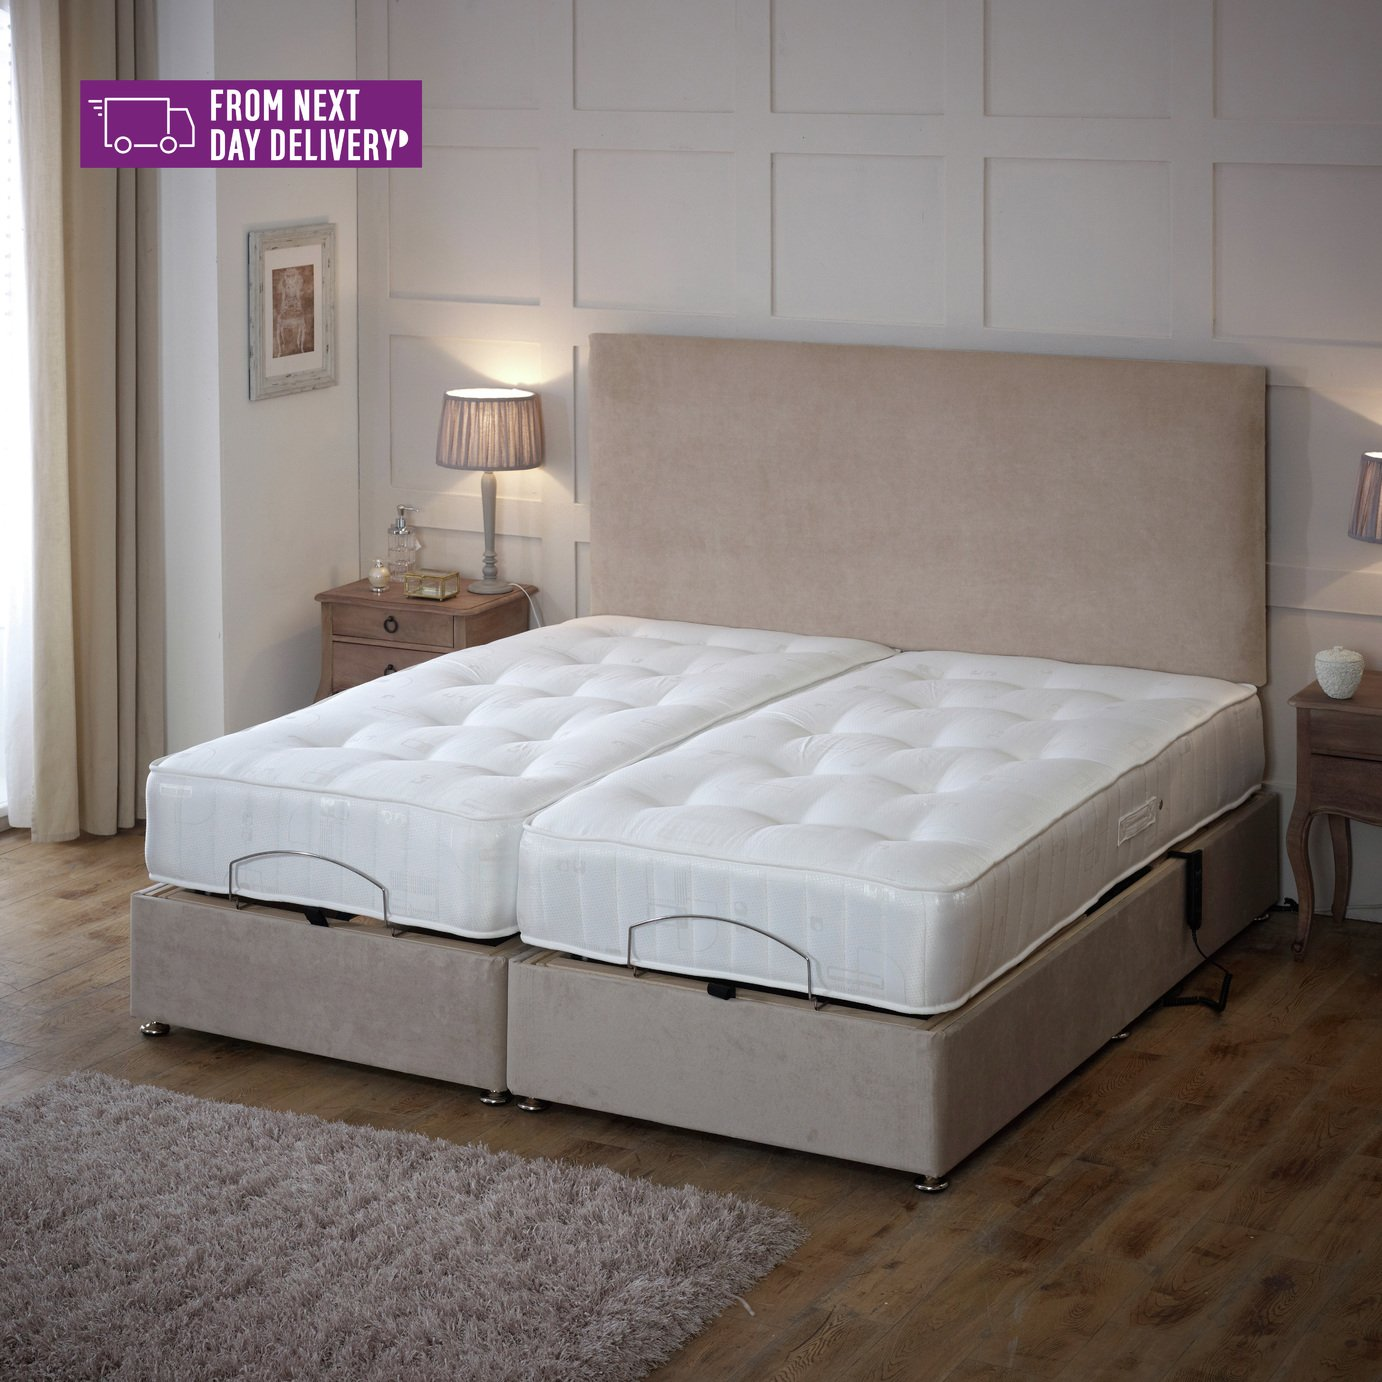 Royal Kingsize Electric Bed with a Pocket Memory Mattress review